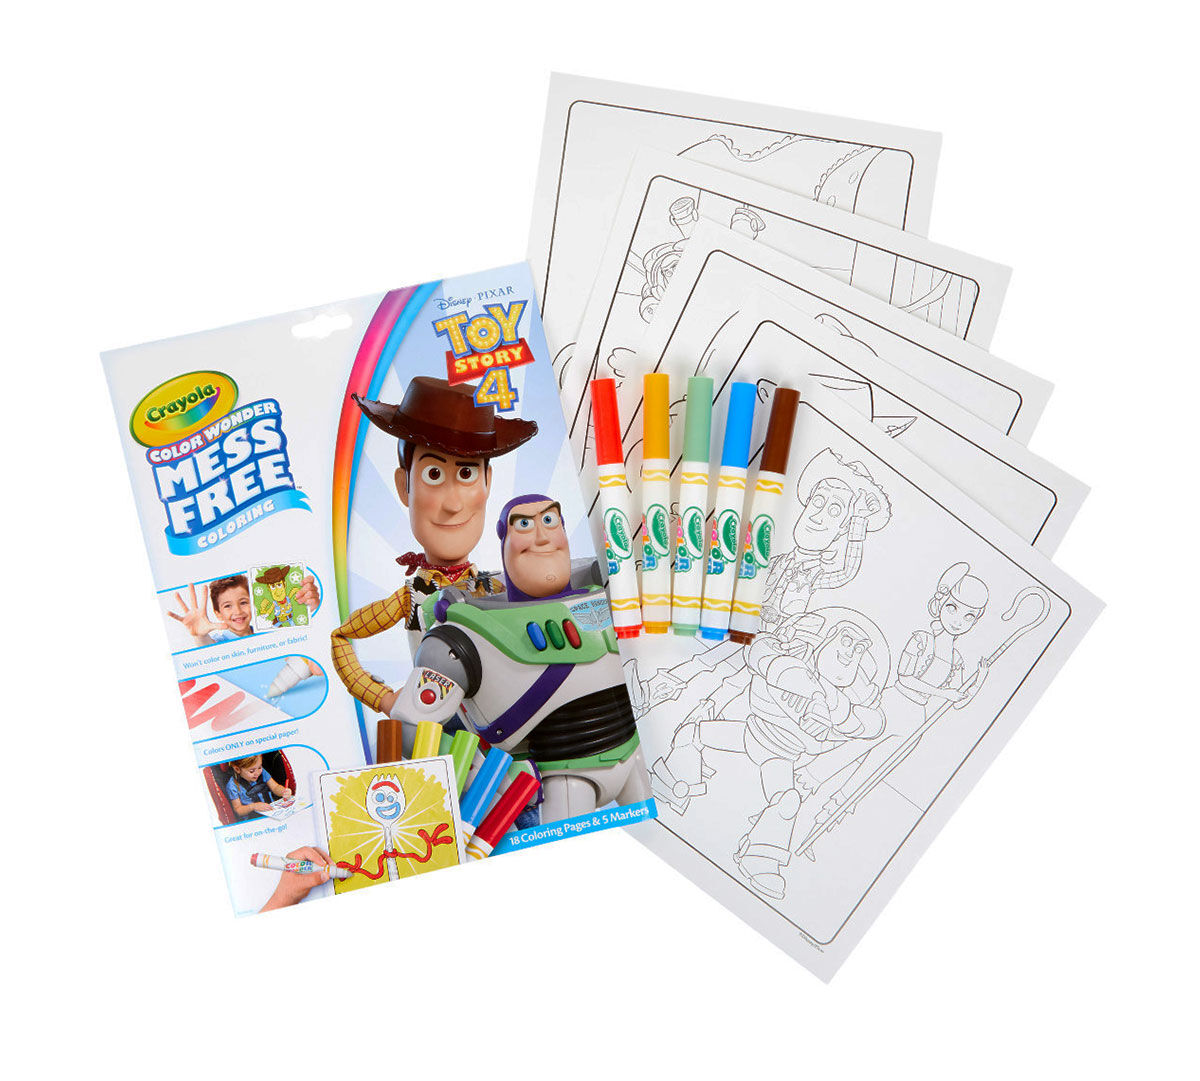 Toy Story 4 Color Wonder Coloring Book & Markers | Crayola ...